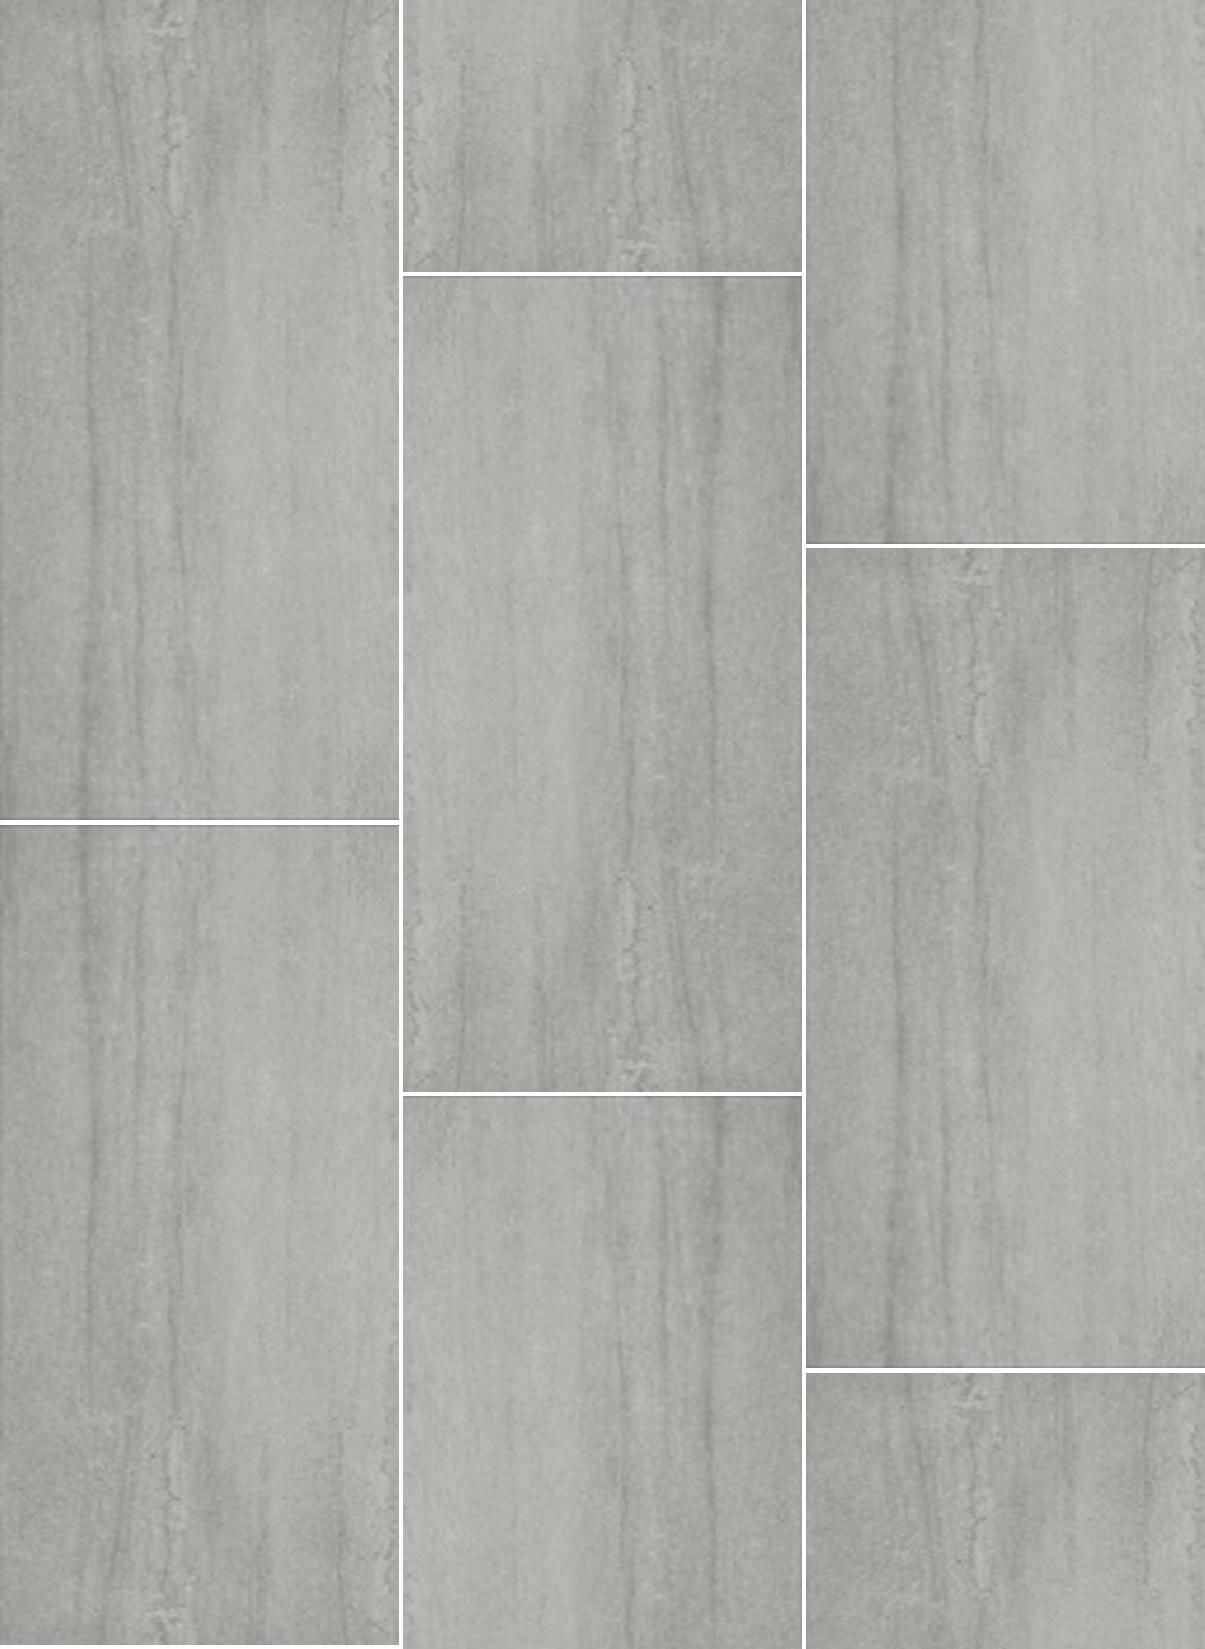 Lglimitlessdesign contest grey 12 24 floor tile nick for Grey kitchen floor tiles ideas